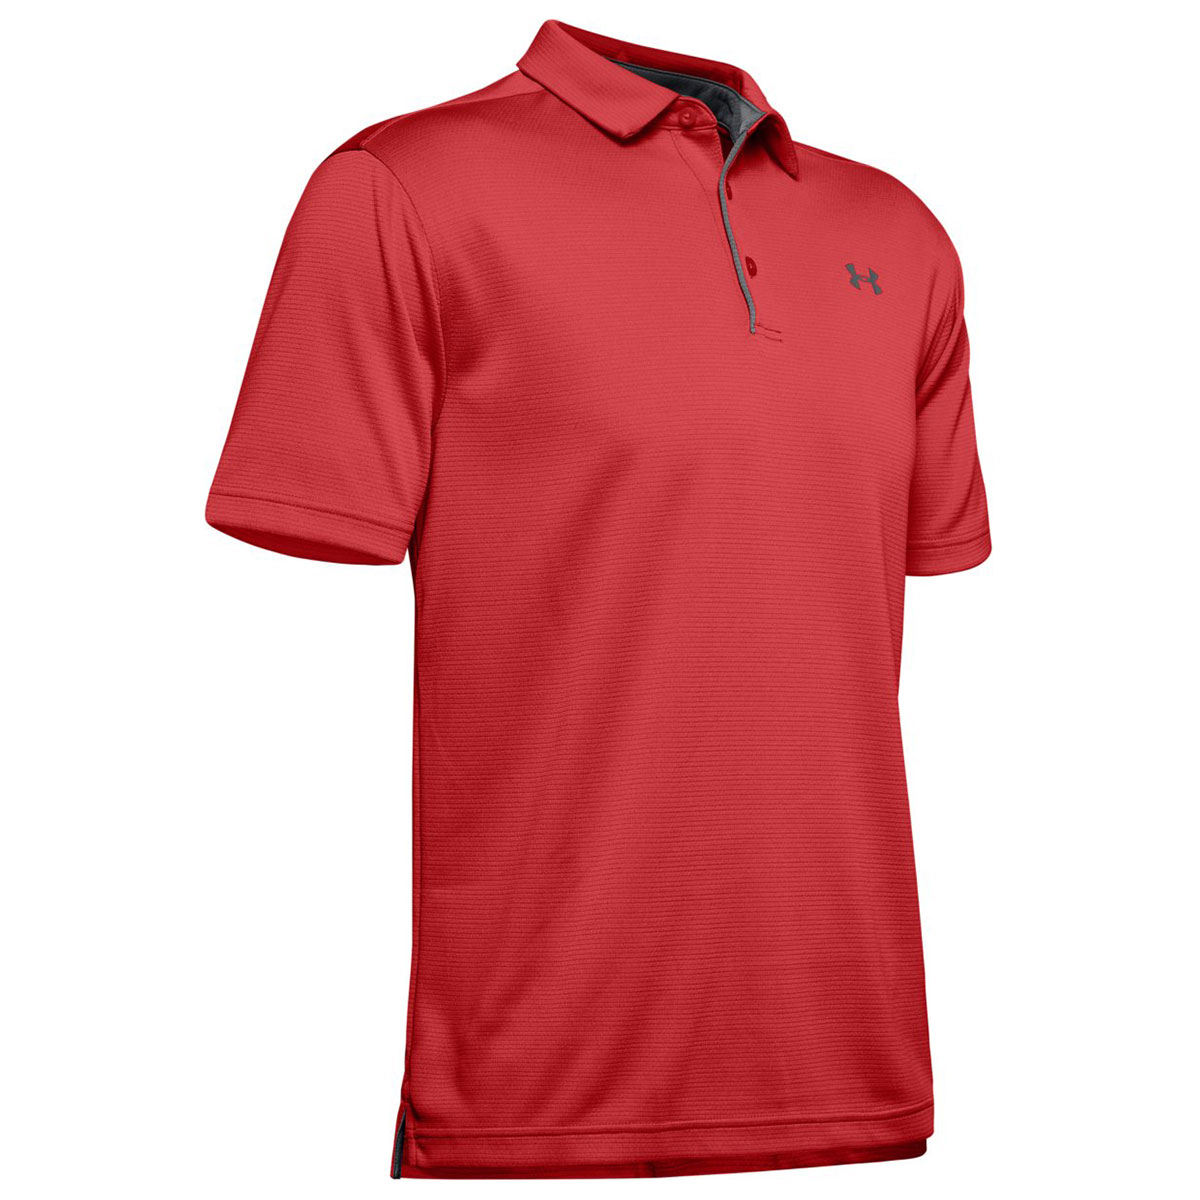 Under-Armour-Mens-2019-Golf-Tech-Wicking-Textured-Soft-Light-Polo-Shirt thumbnail 52